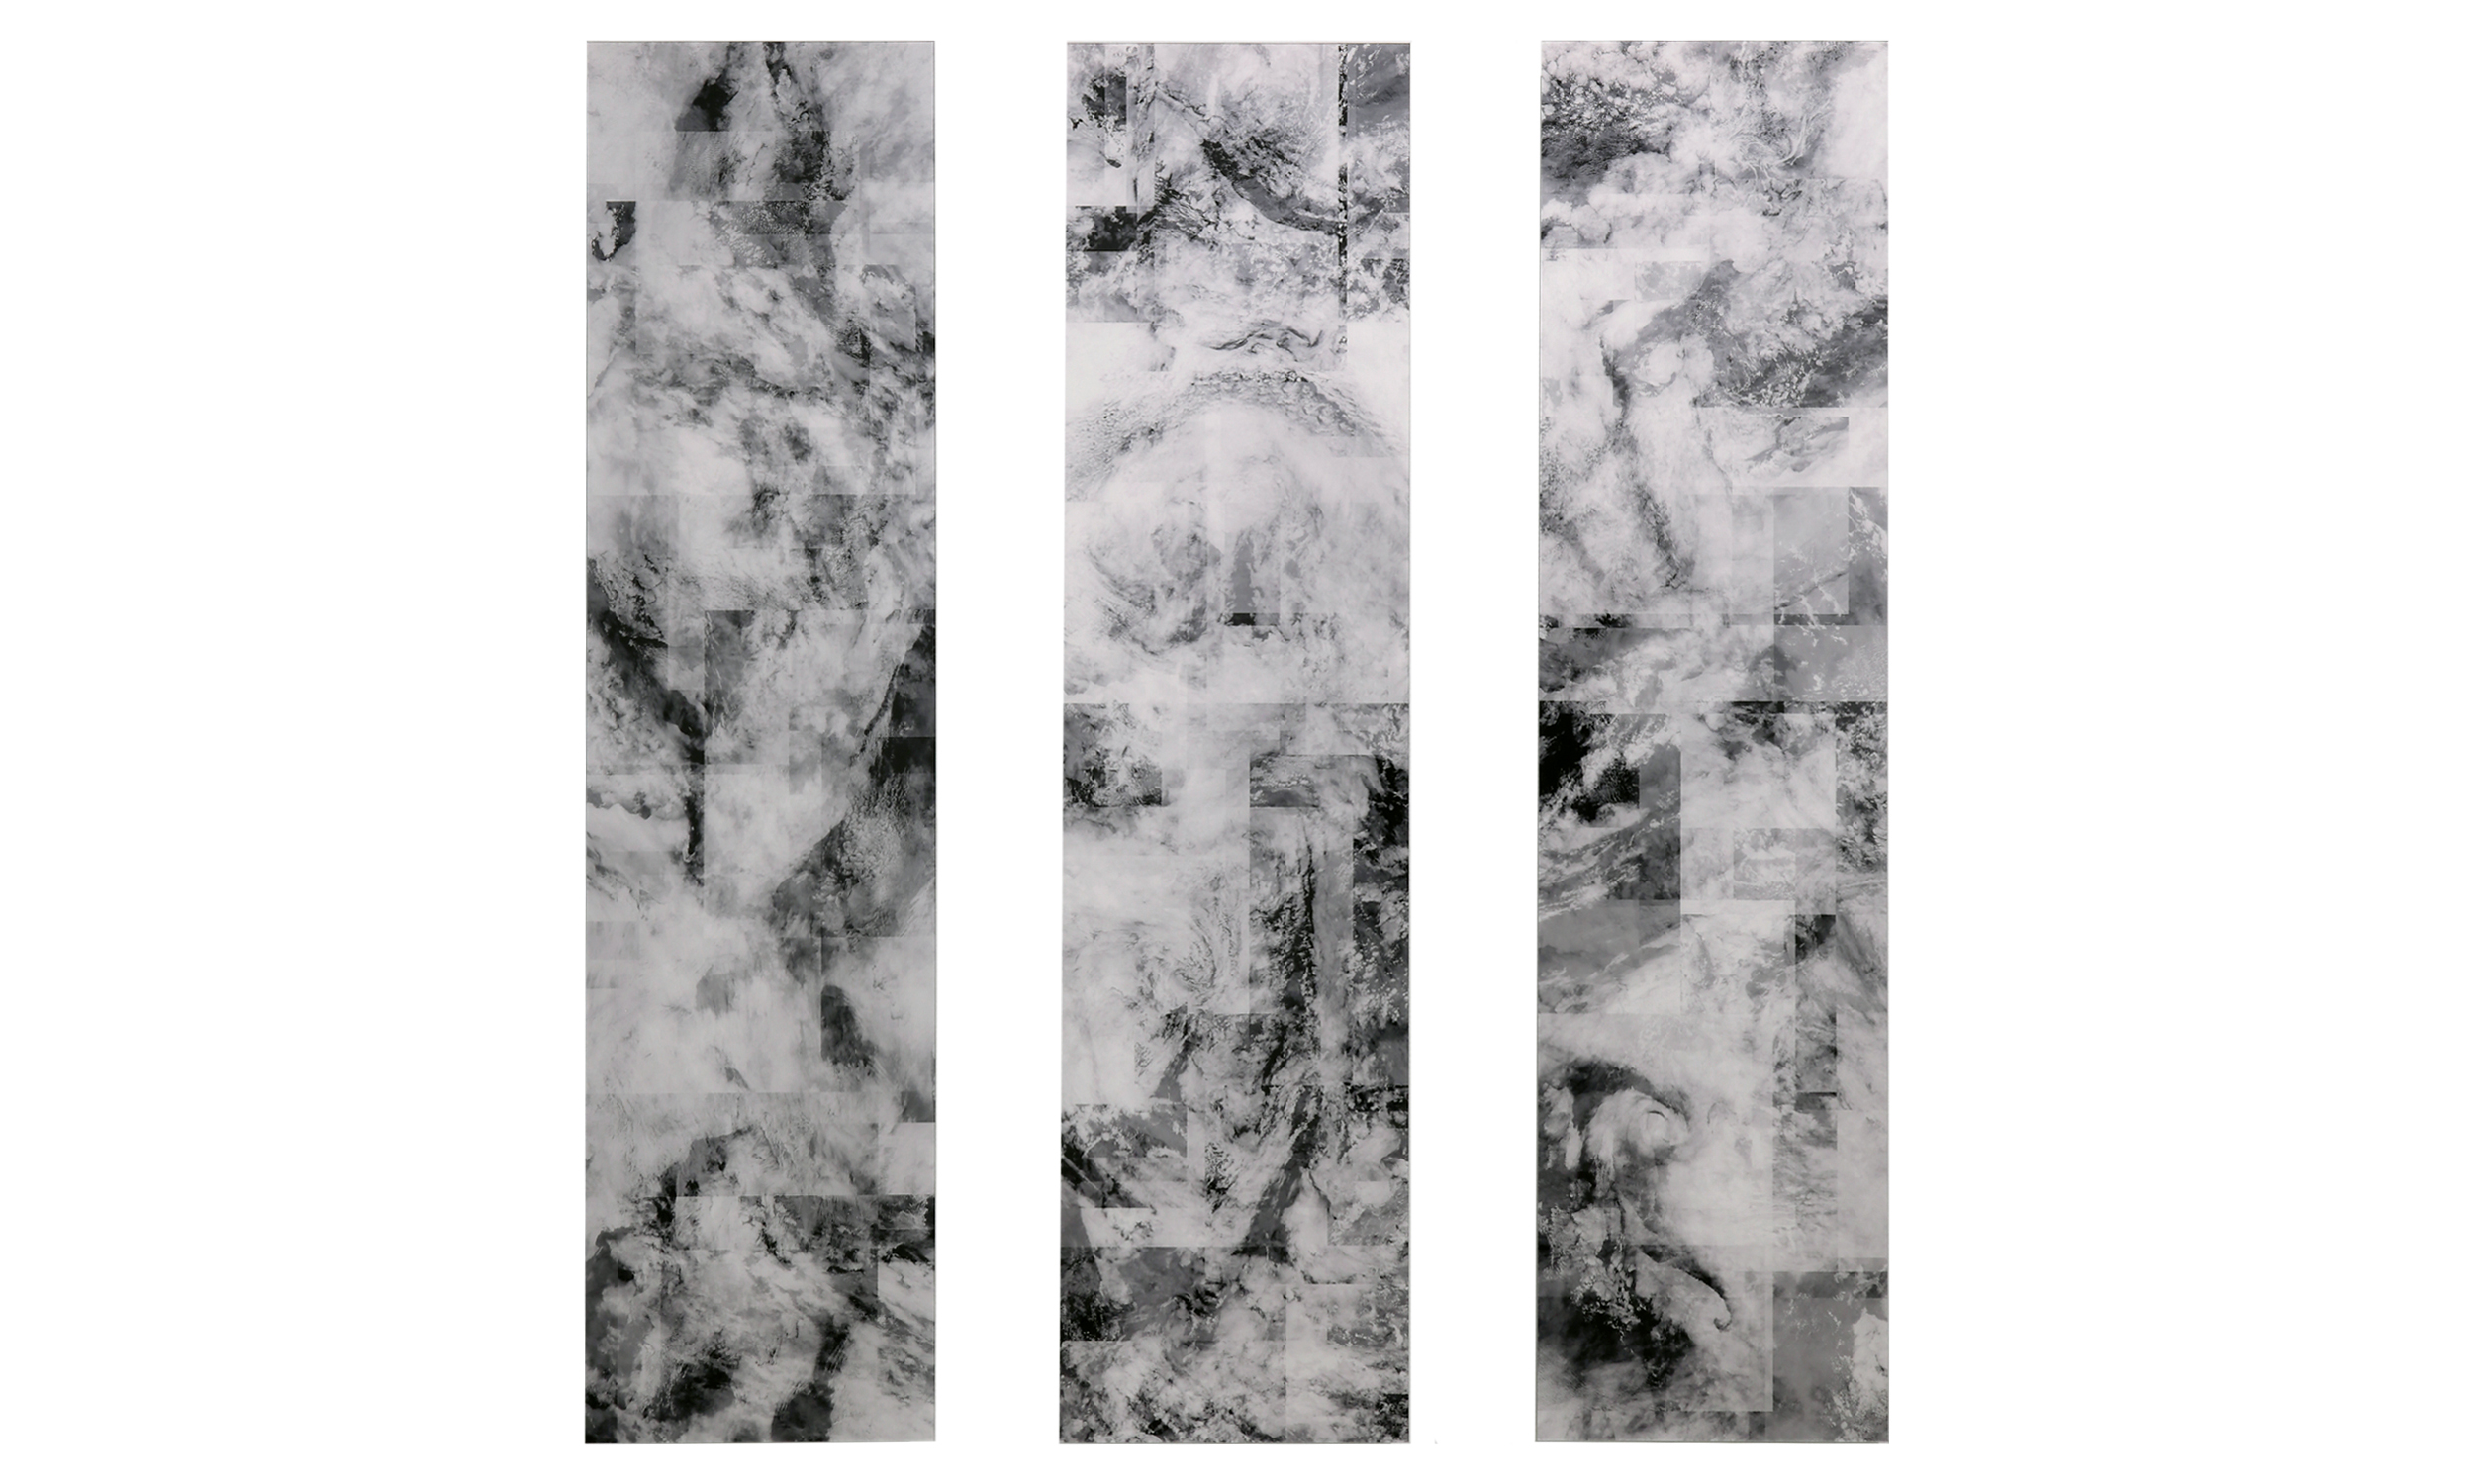 """Another Storm Named After A Woman, 306 layered satellite images taken over the Amundsen Sea, Fujiflex prints, plexiglass, 1.75"""" x 13"""" x 52"""", $5500    Contact us for purchase"""